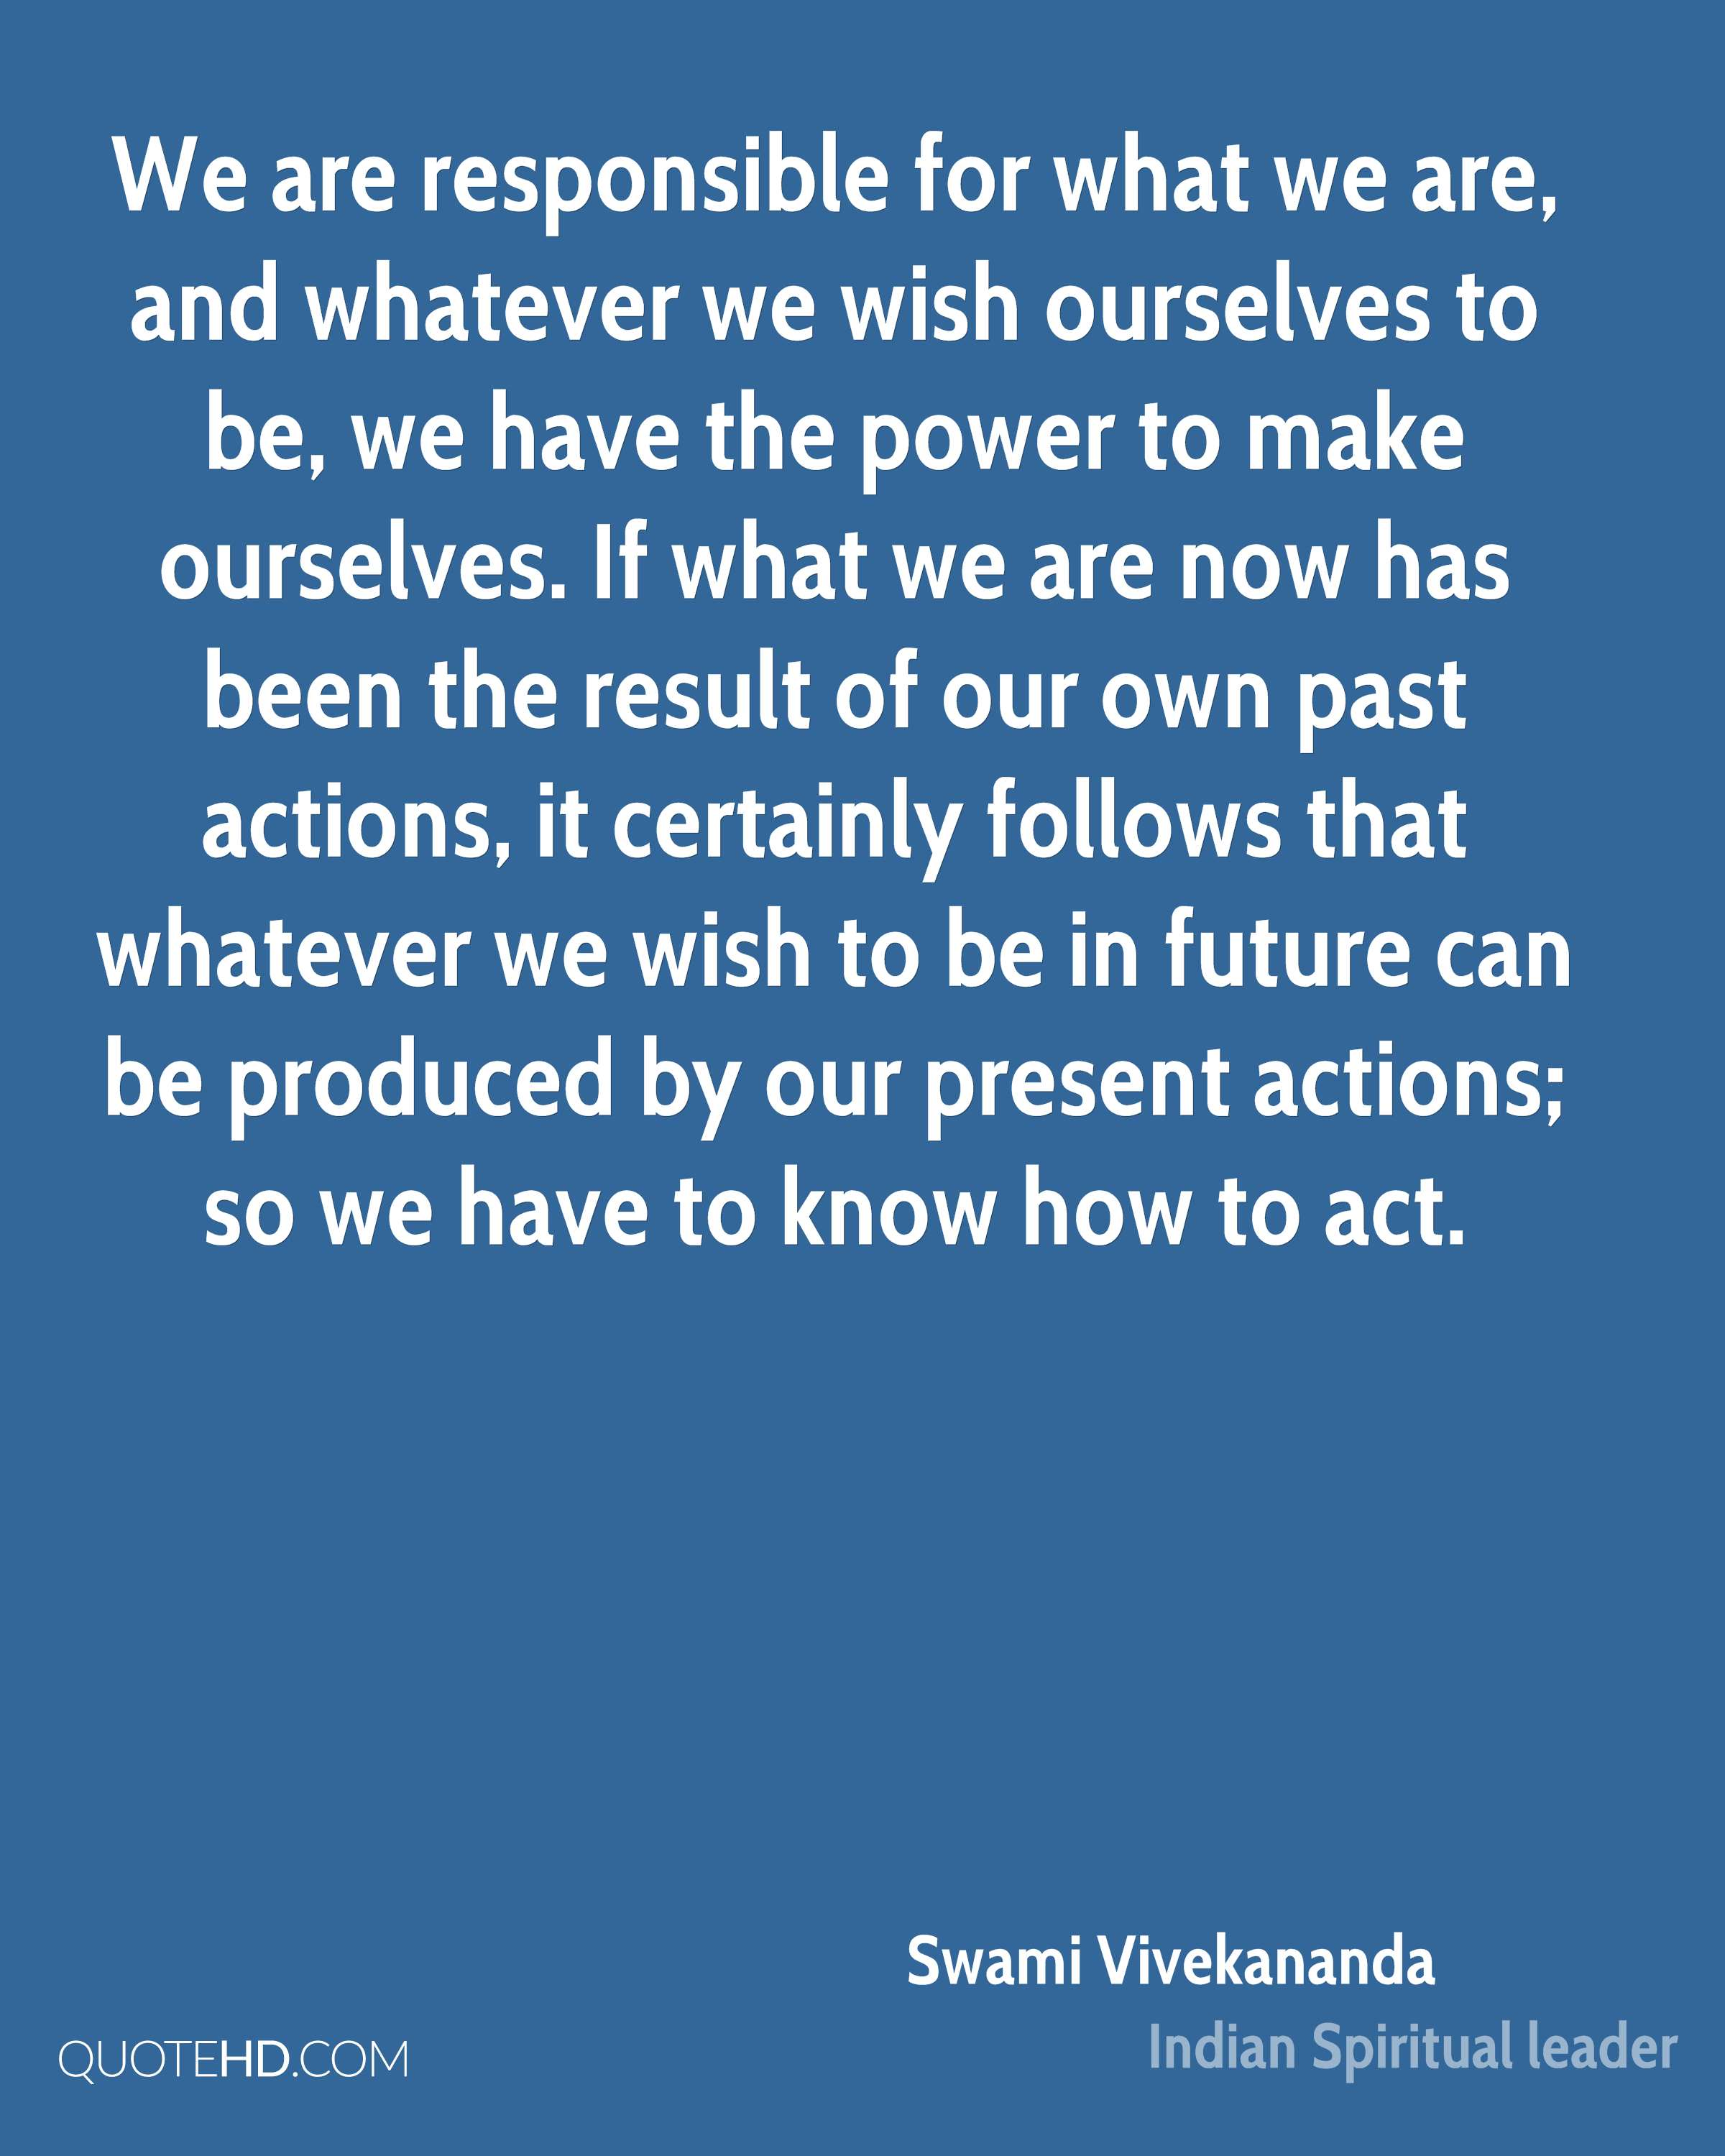 We are responsible for what we are, and whatever we wish ourselves to be, we have the power to make ourselves. If what we are now has been the result of our own past actions, it certainly follows that whatever we wish to be in future can be produced by our present actions; so we have to know how to act.